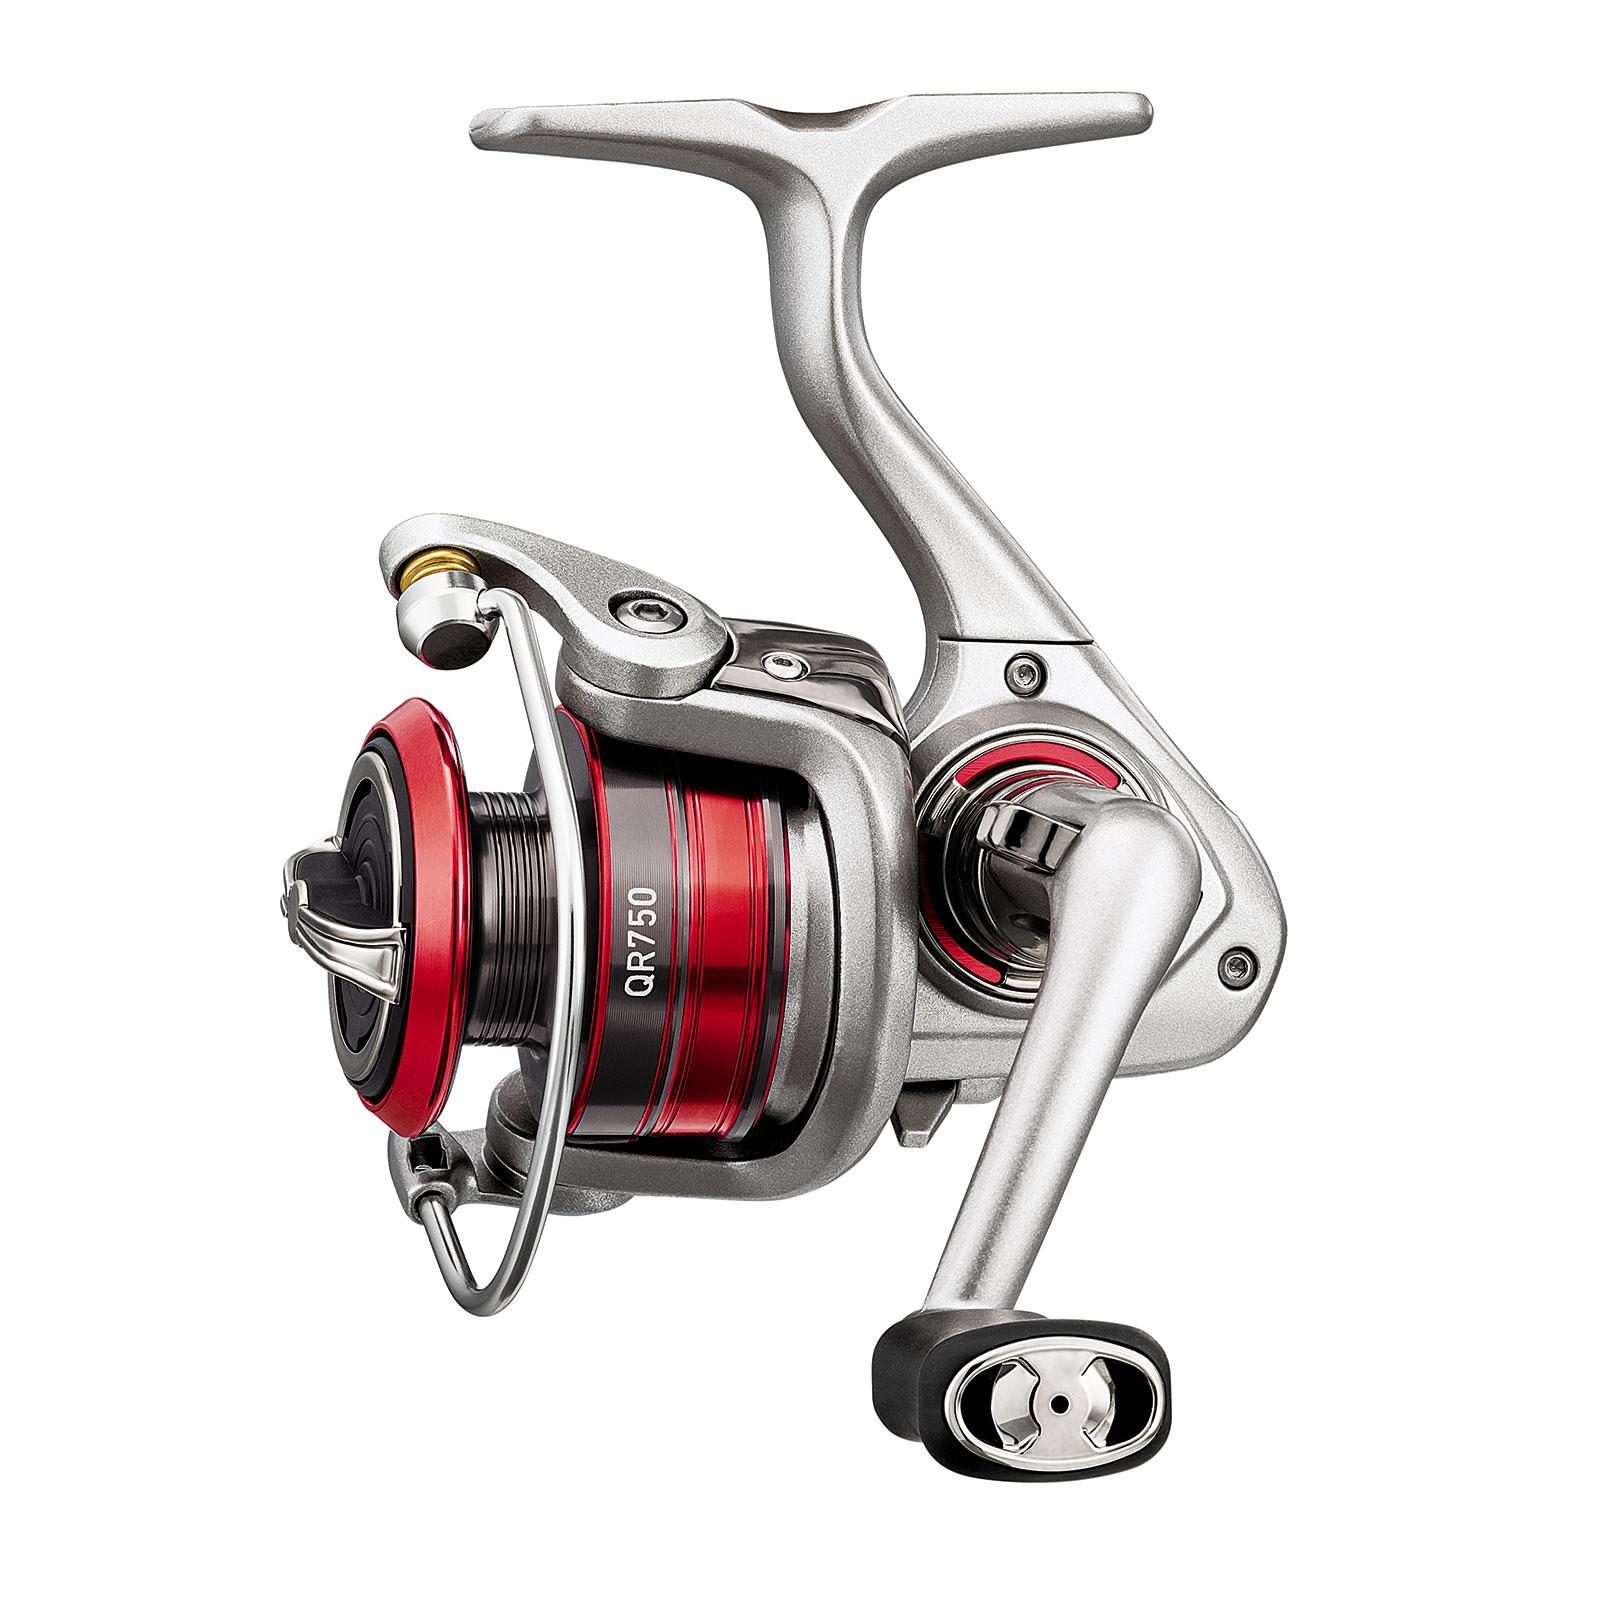 Daiwa QR Ultralight Spinning Reel